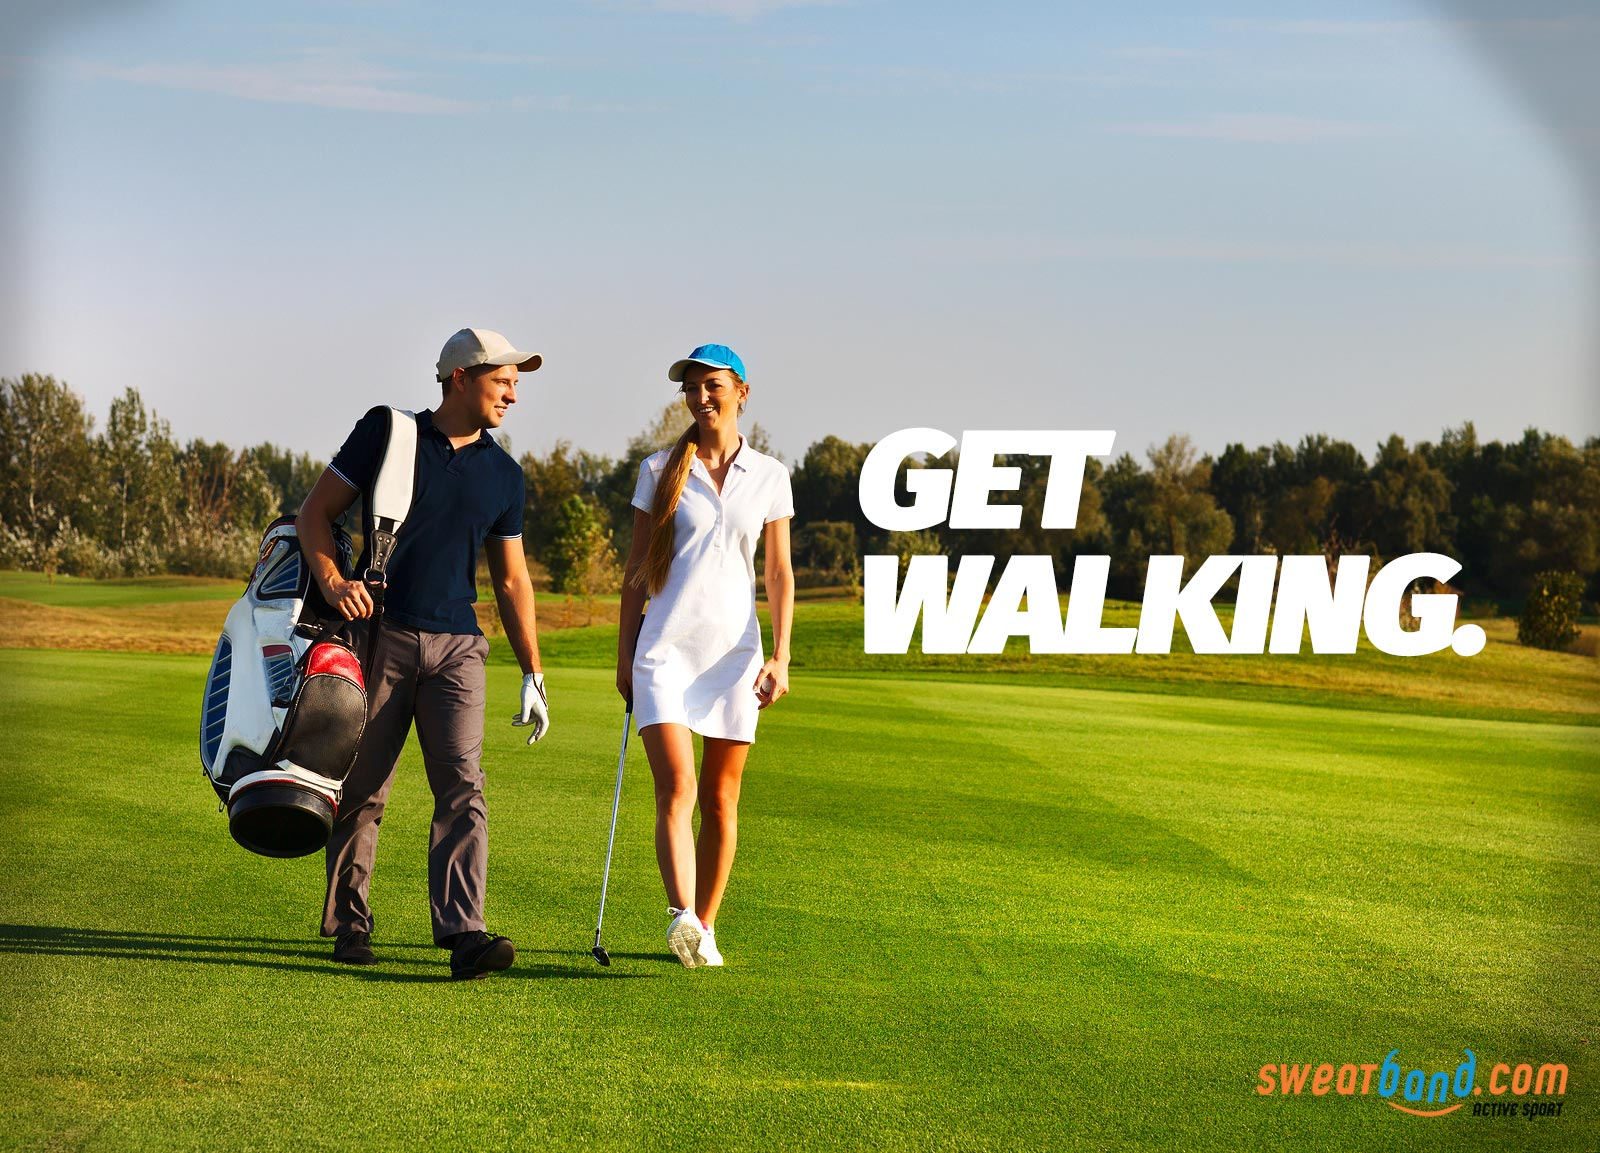 Play a round of golf and you'll be doing well over your 10,000 steps for the day!